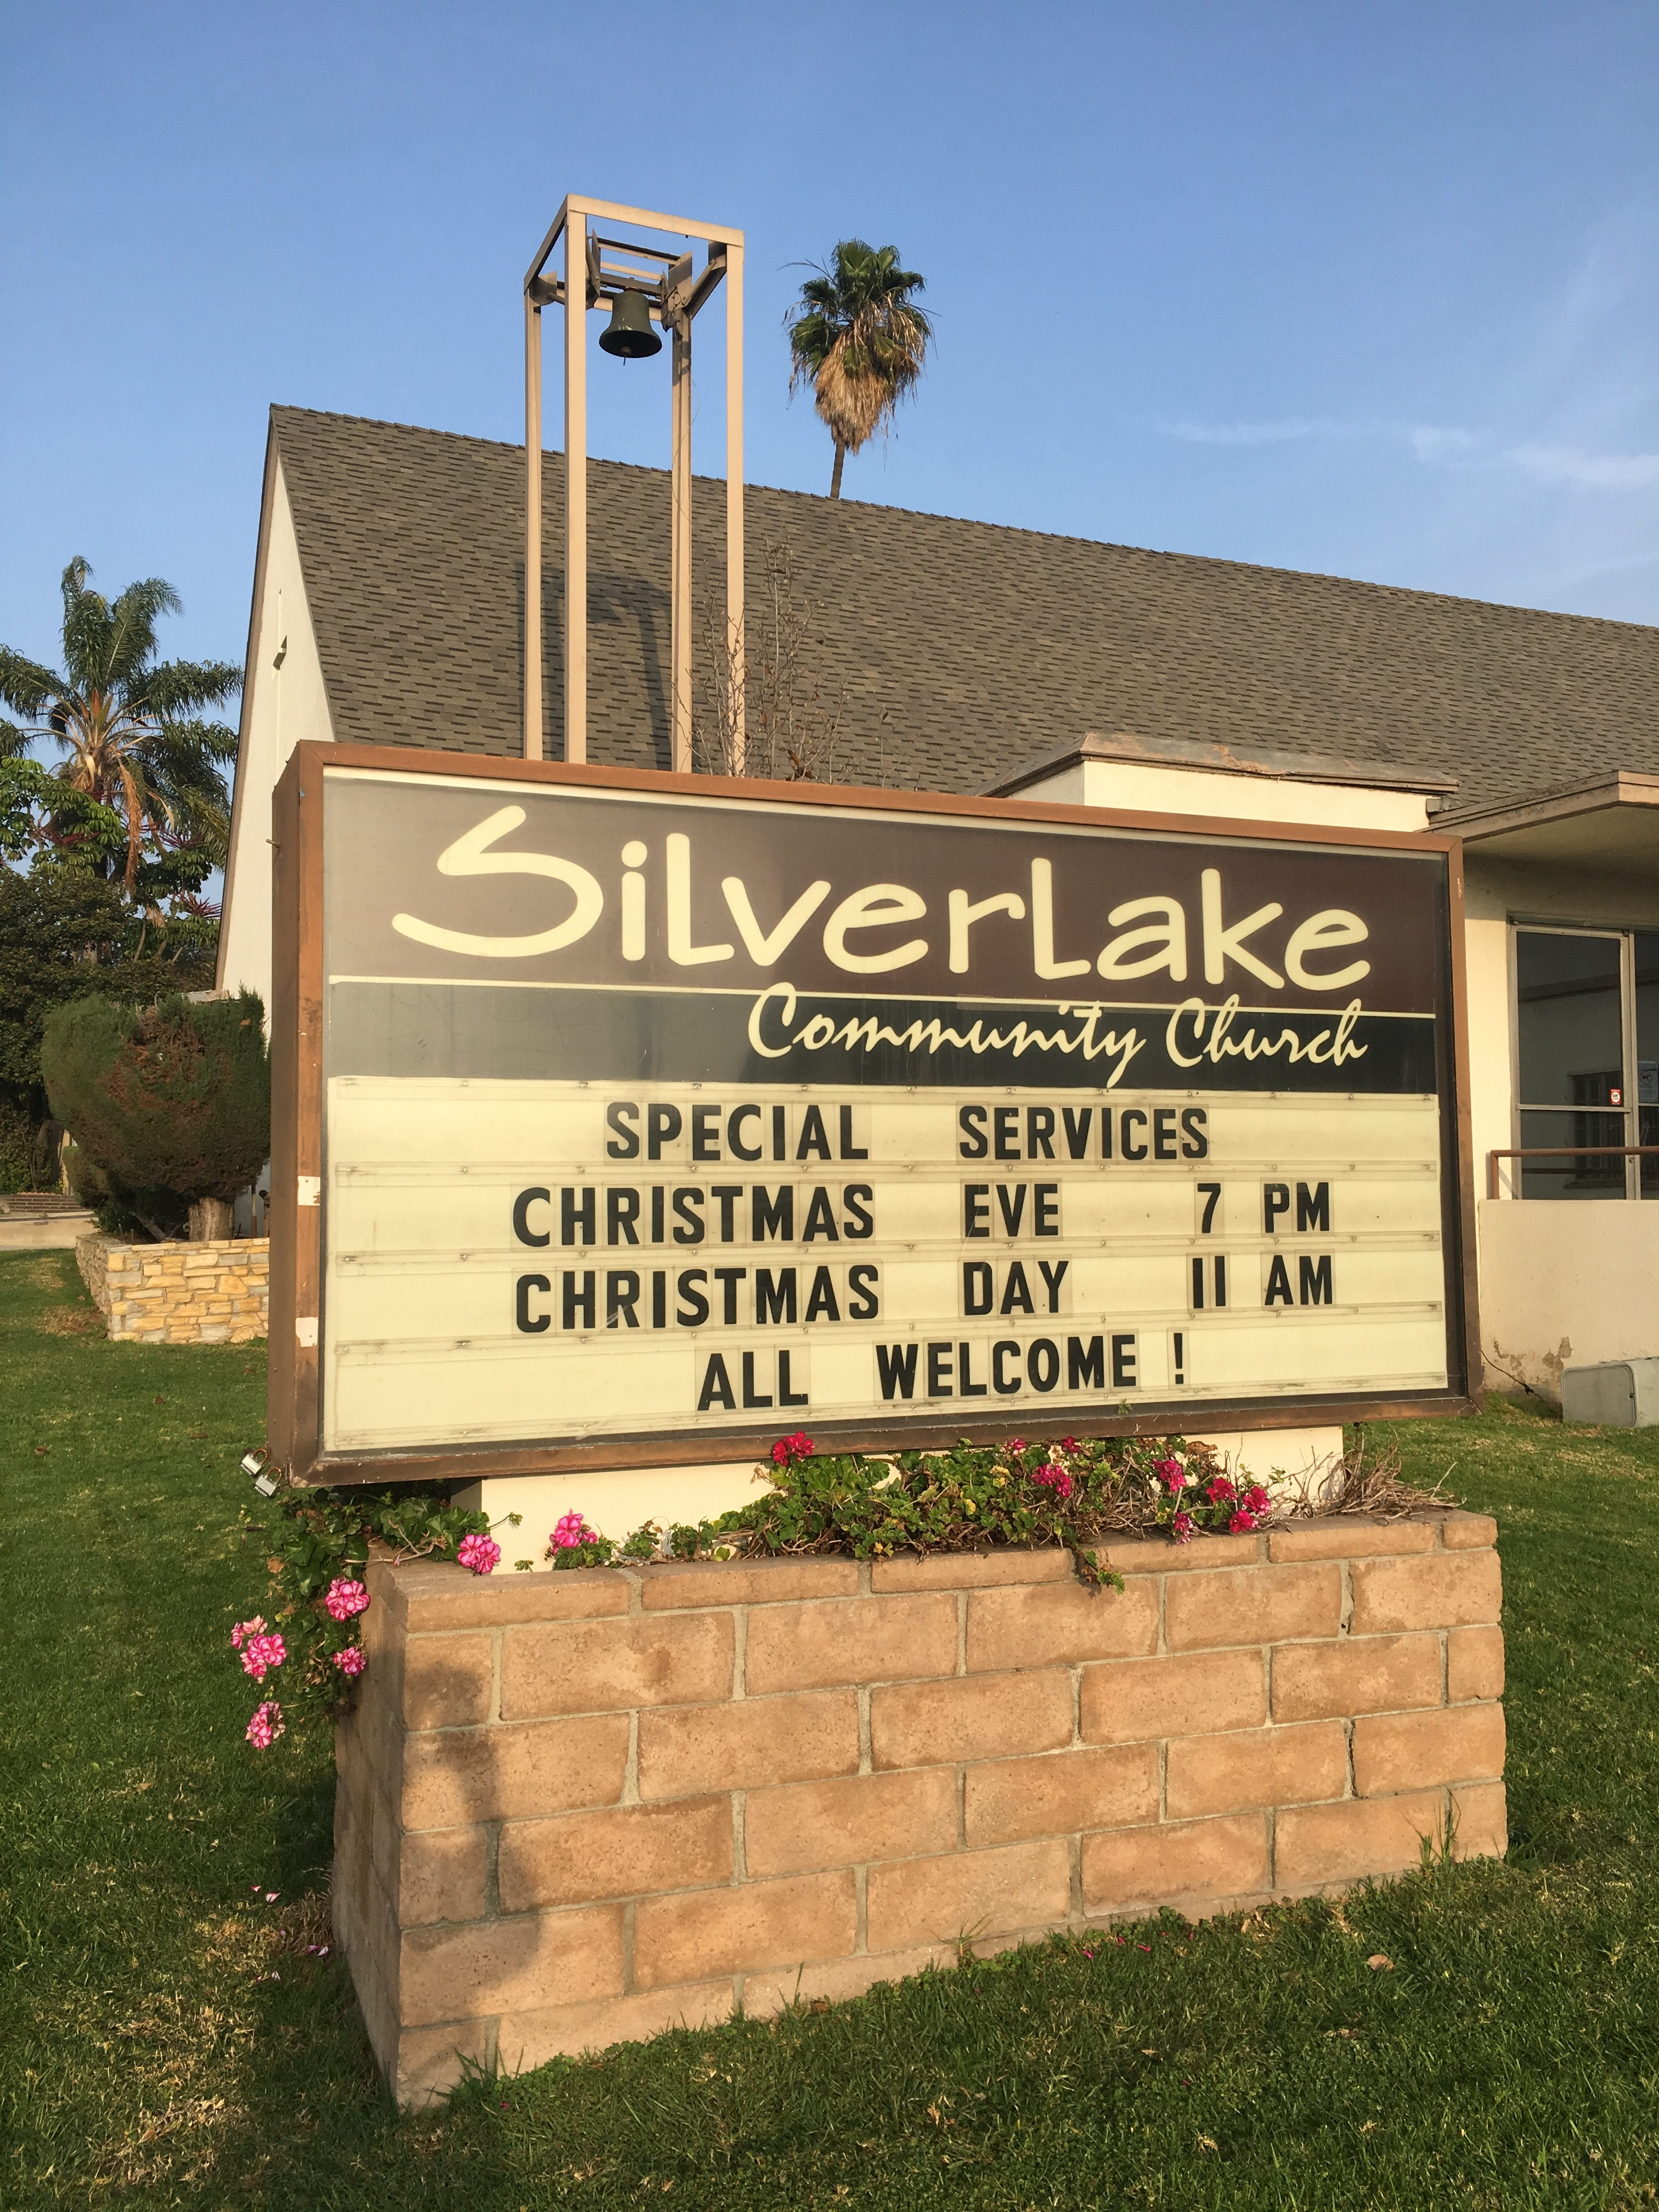 SilverLake Community Church Christmas Services